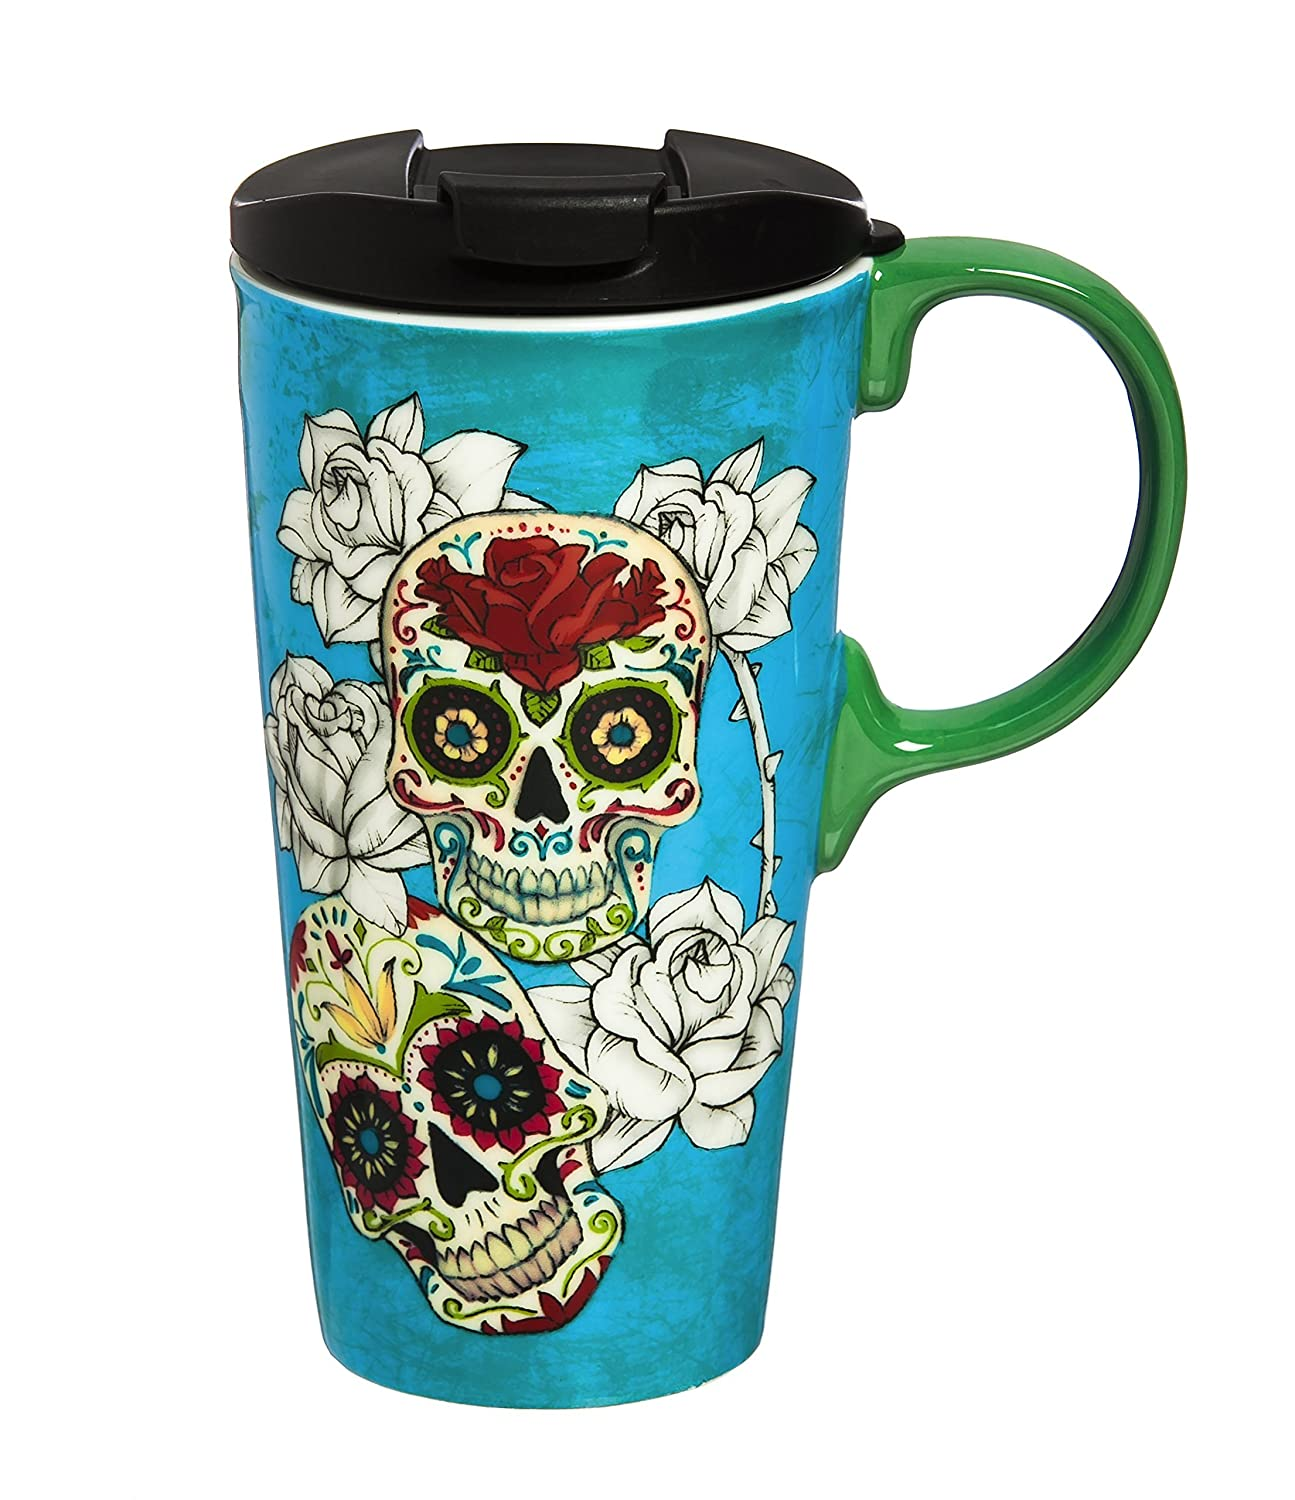 """Cypress Home Day of the Dead 17 oz Boxed Ceramic Perfect Travel Coffee Mug or Tea Cup with Lid - 3""""W x 5.25""""D x 7""""H"""